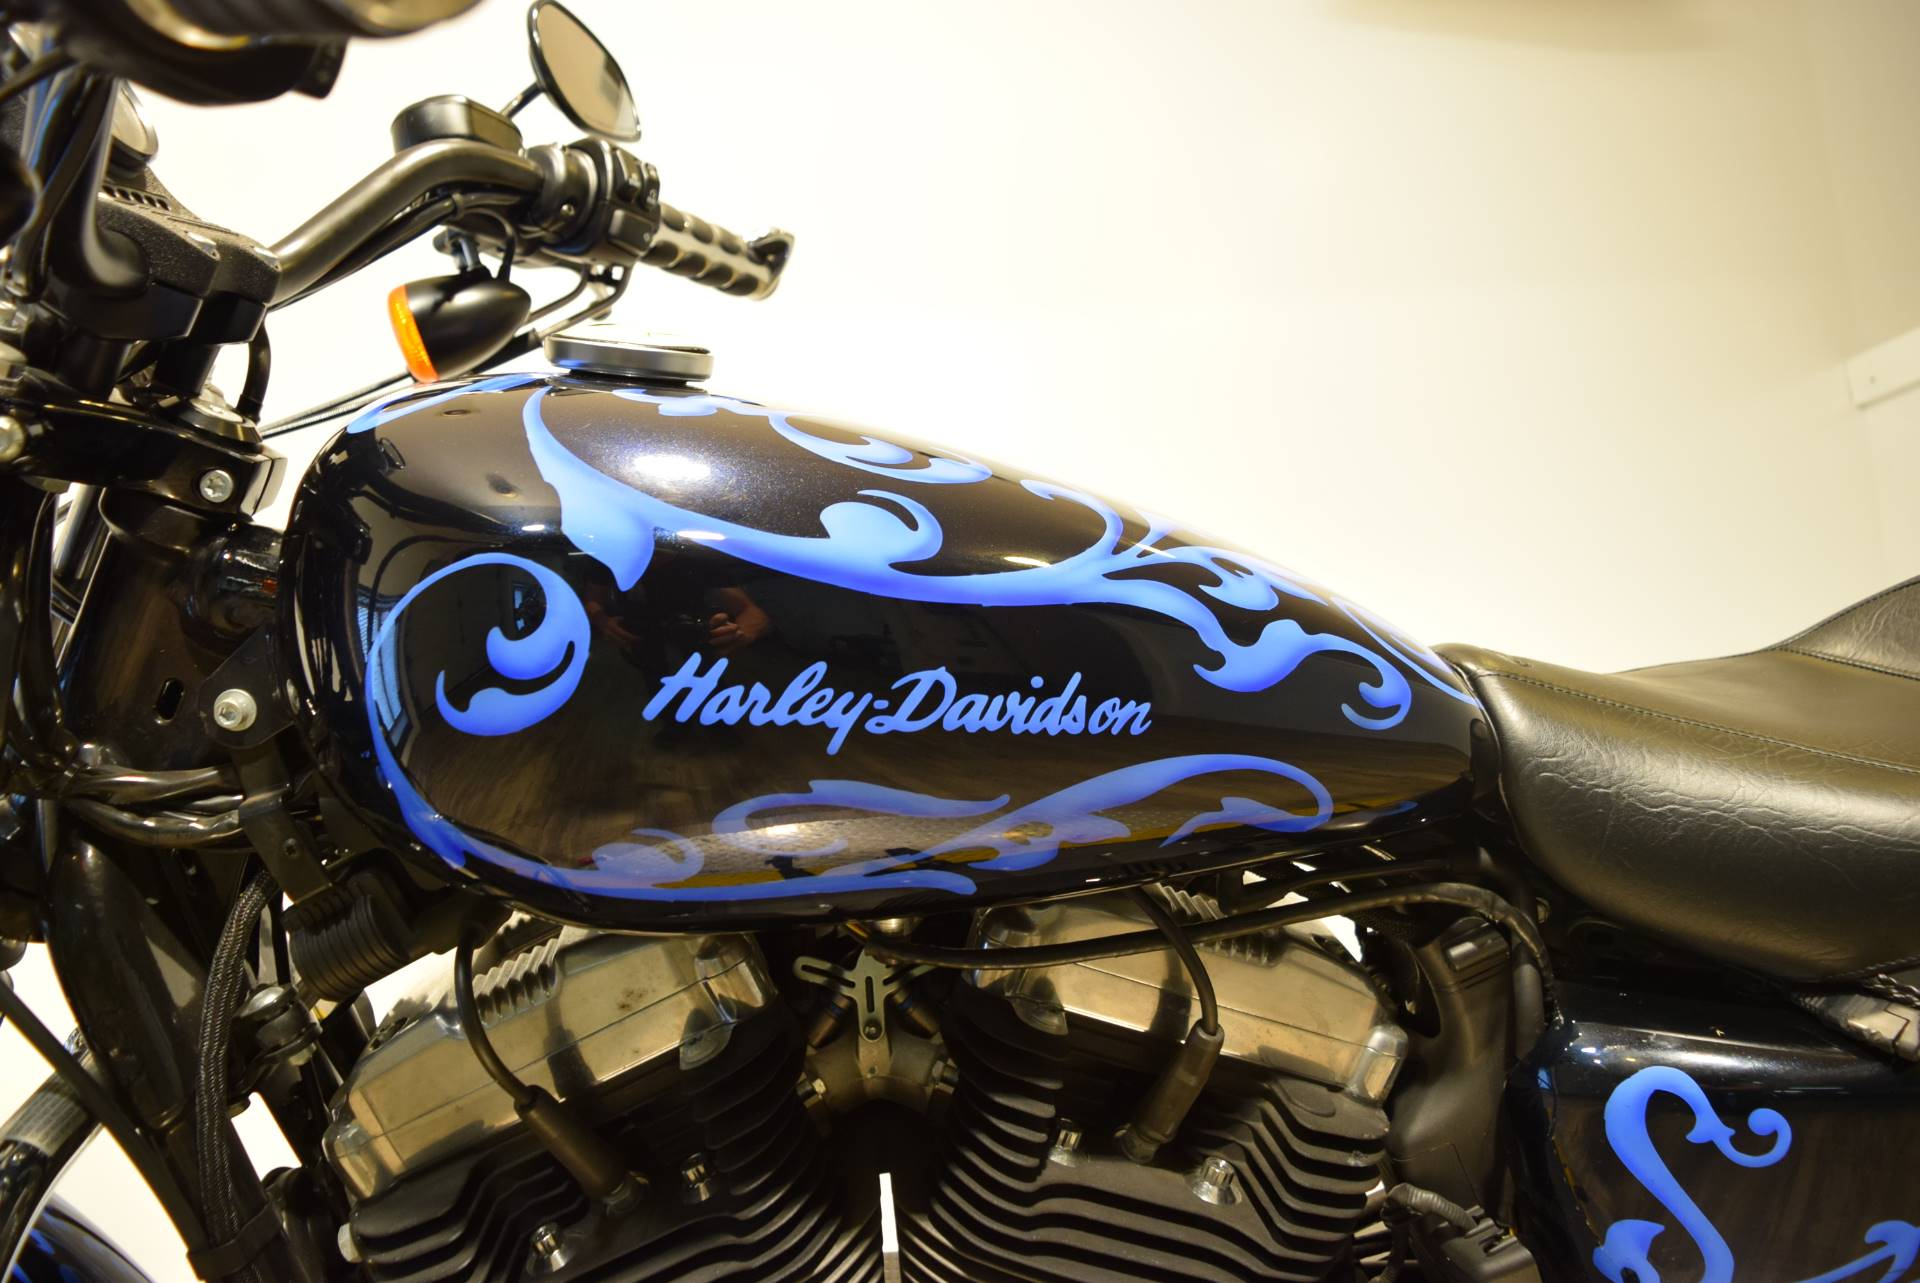 2012 Harley-Davidson XL1200N Sportster in Wauconda, Illinois